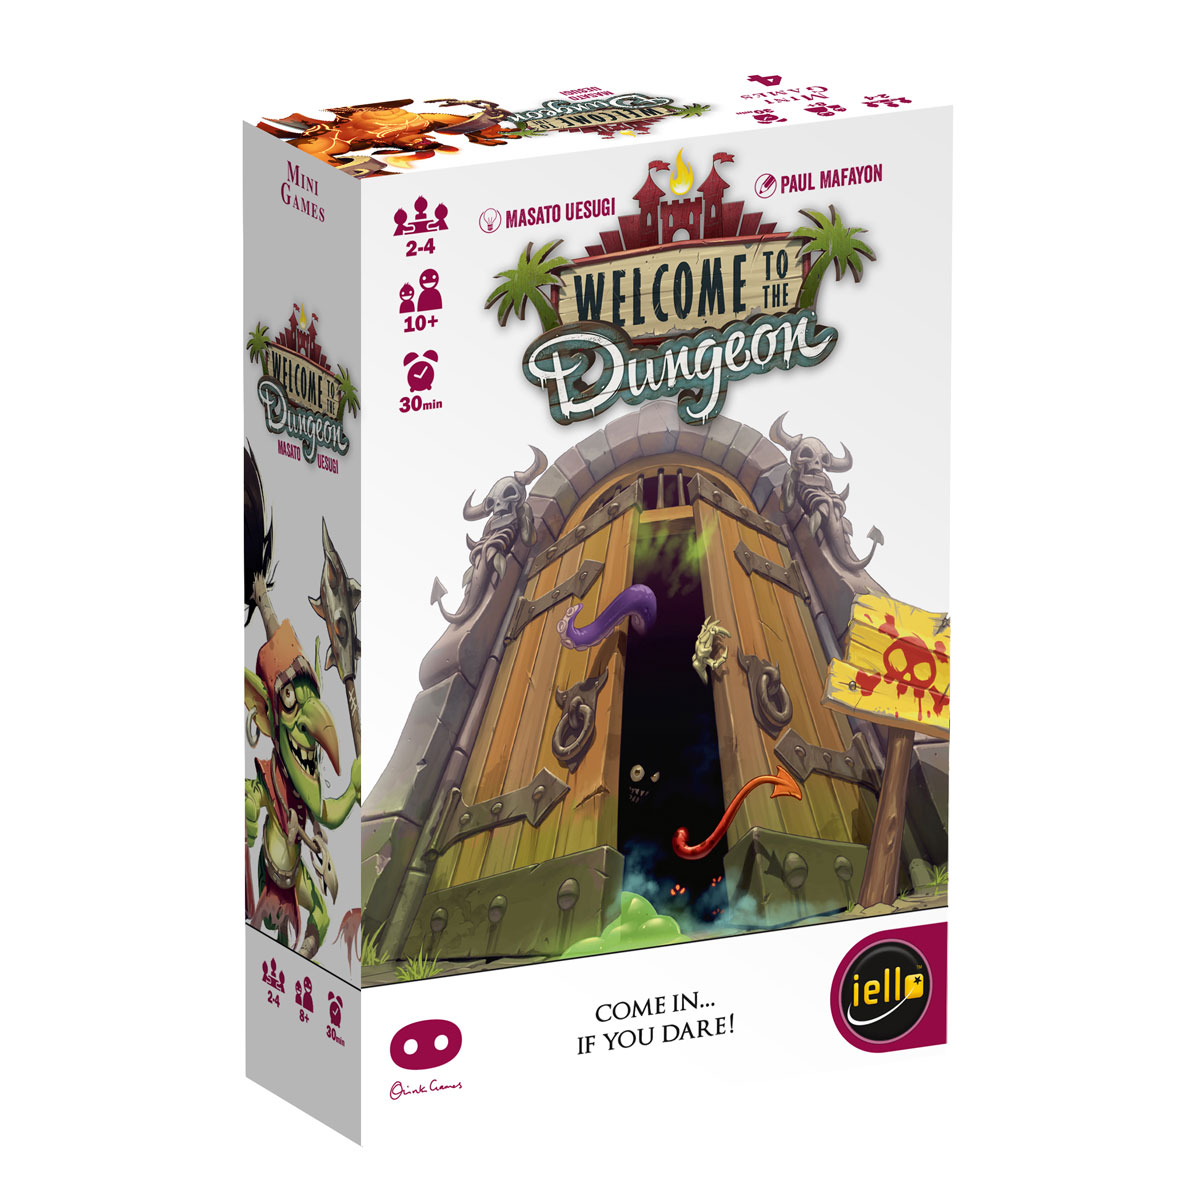 WelcomeDungeon_3Dbox